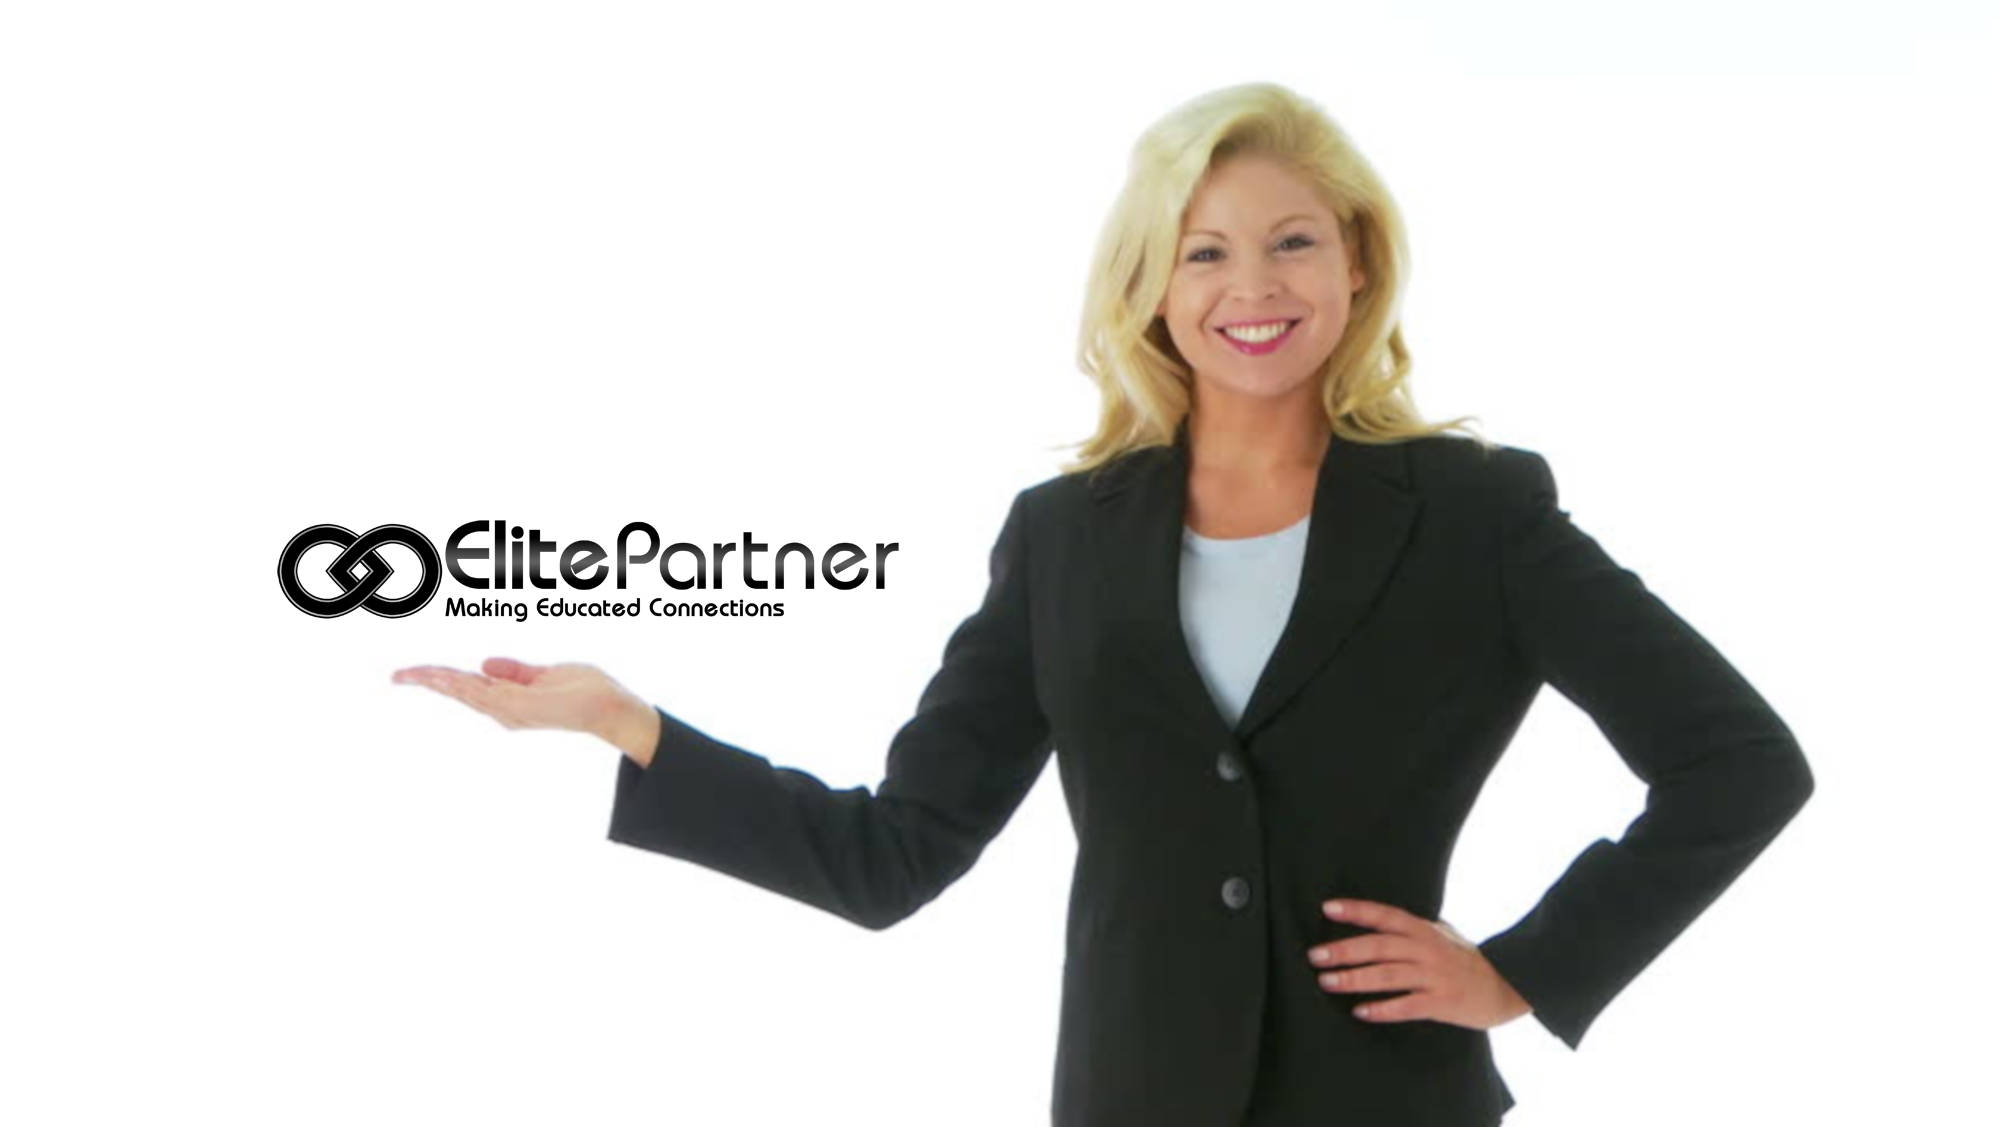 Elitepartner Hotline